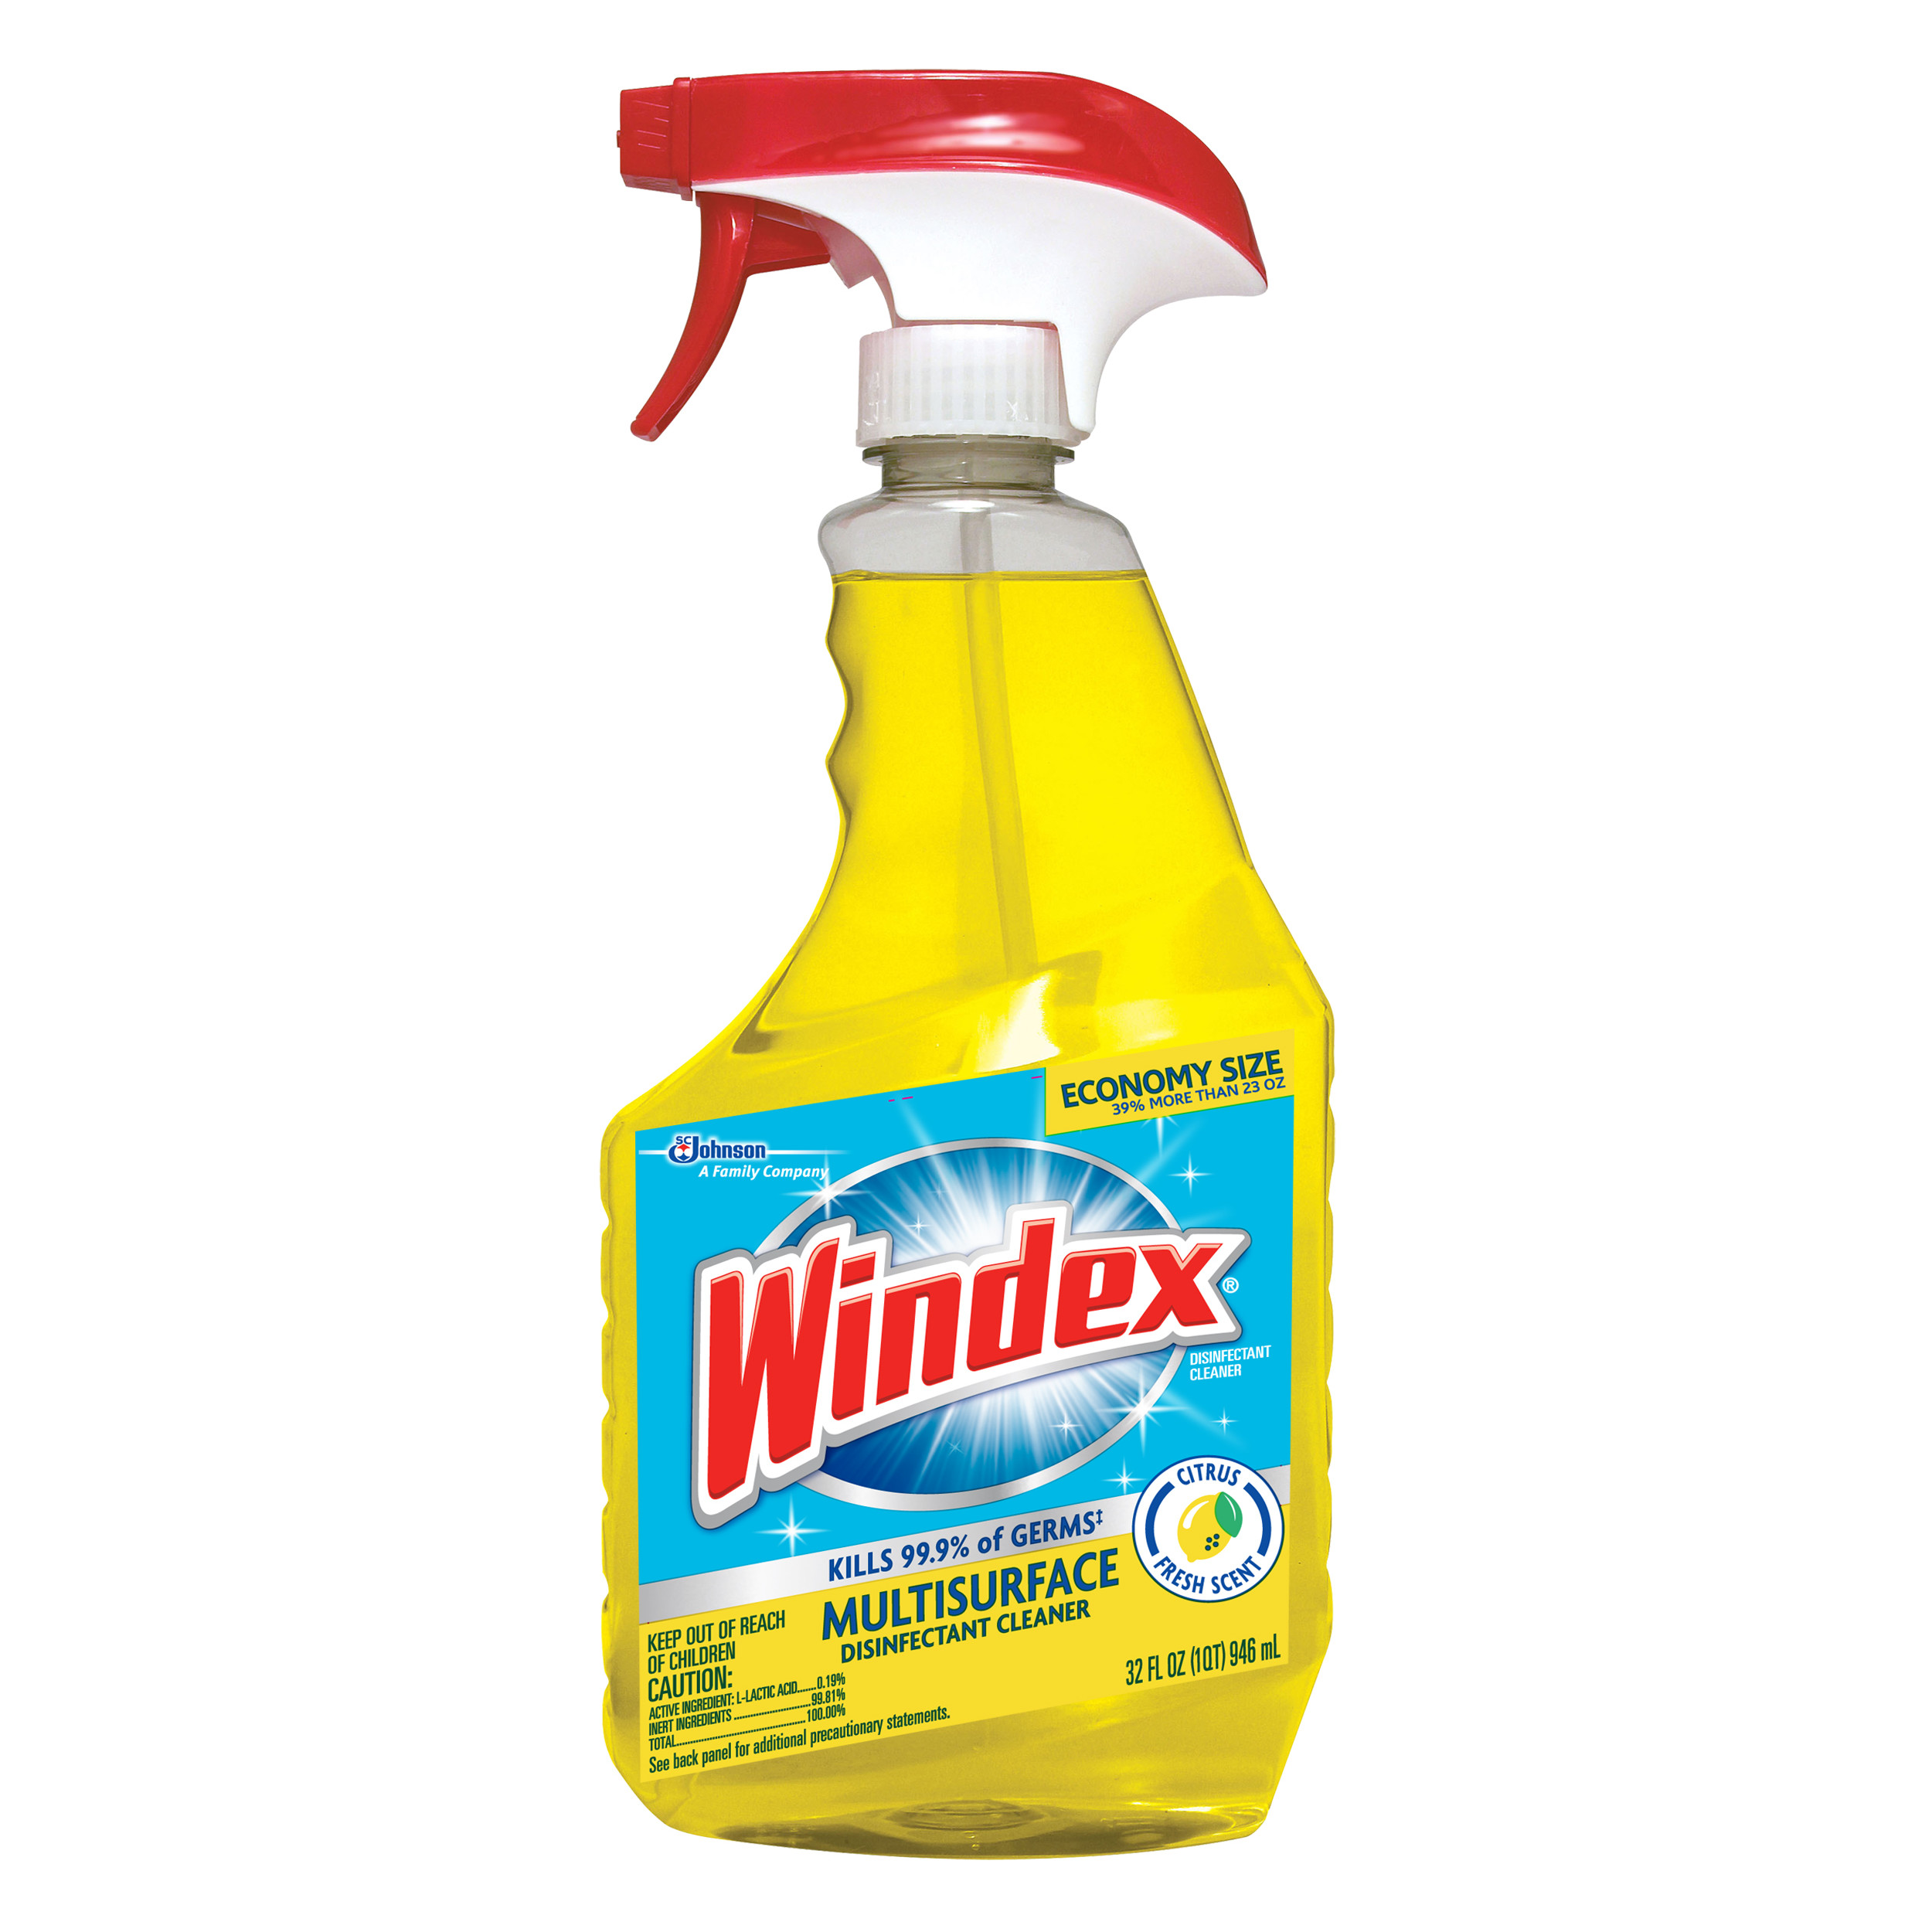 Windex Disinfectant Cleaner Multi-Surface Trigger 32 Fluid Ounces